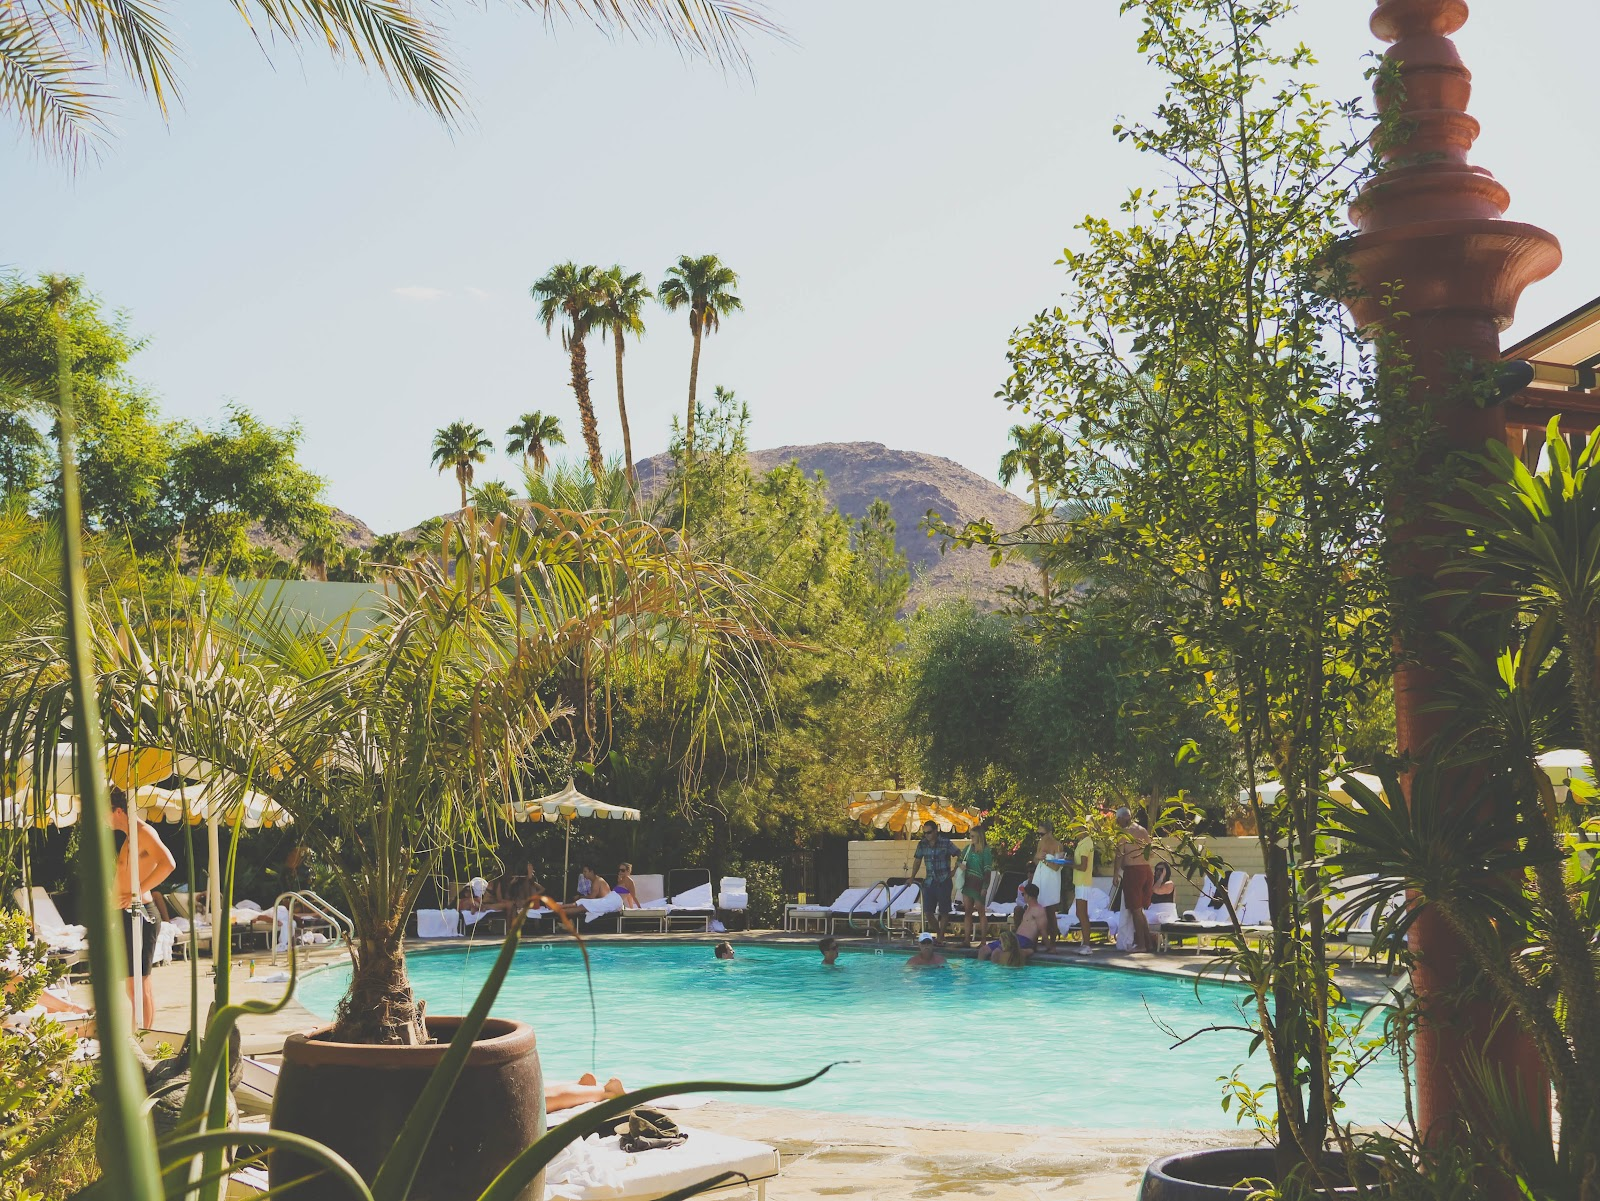 scenes from the j m wedding weekend at the parker palm springs